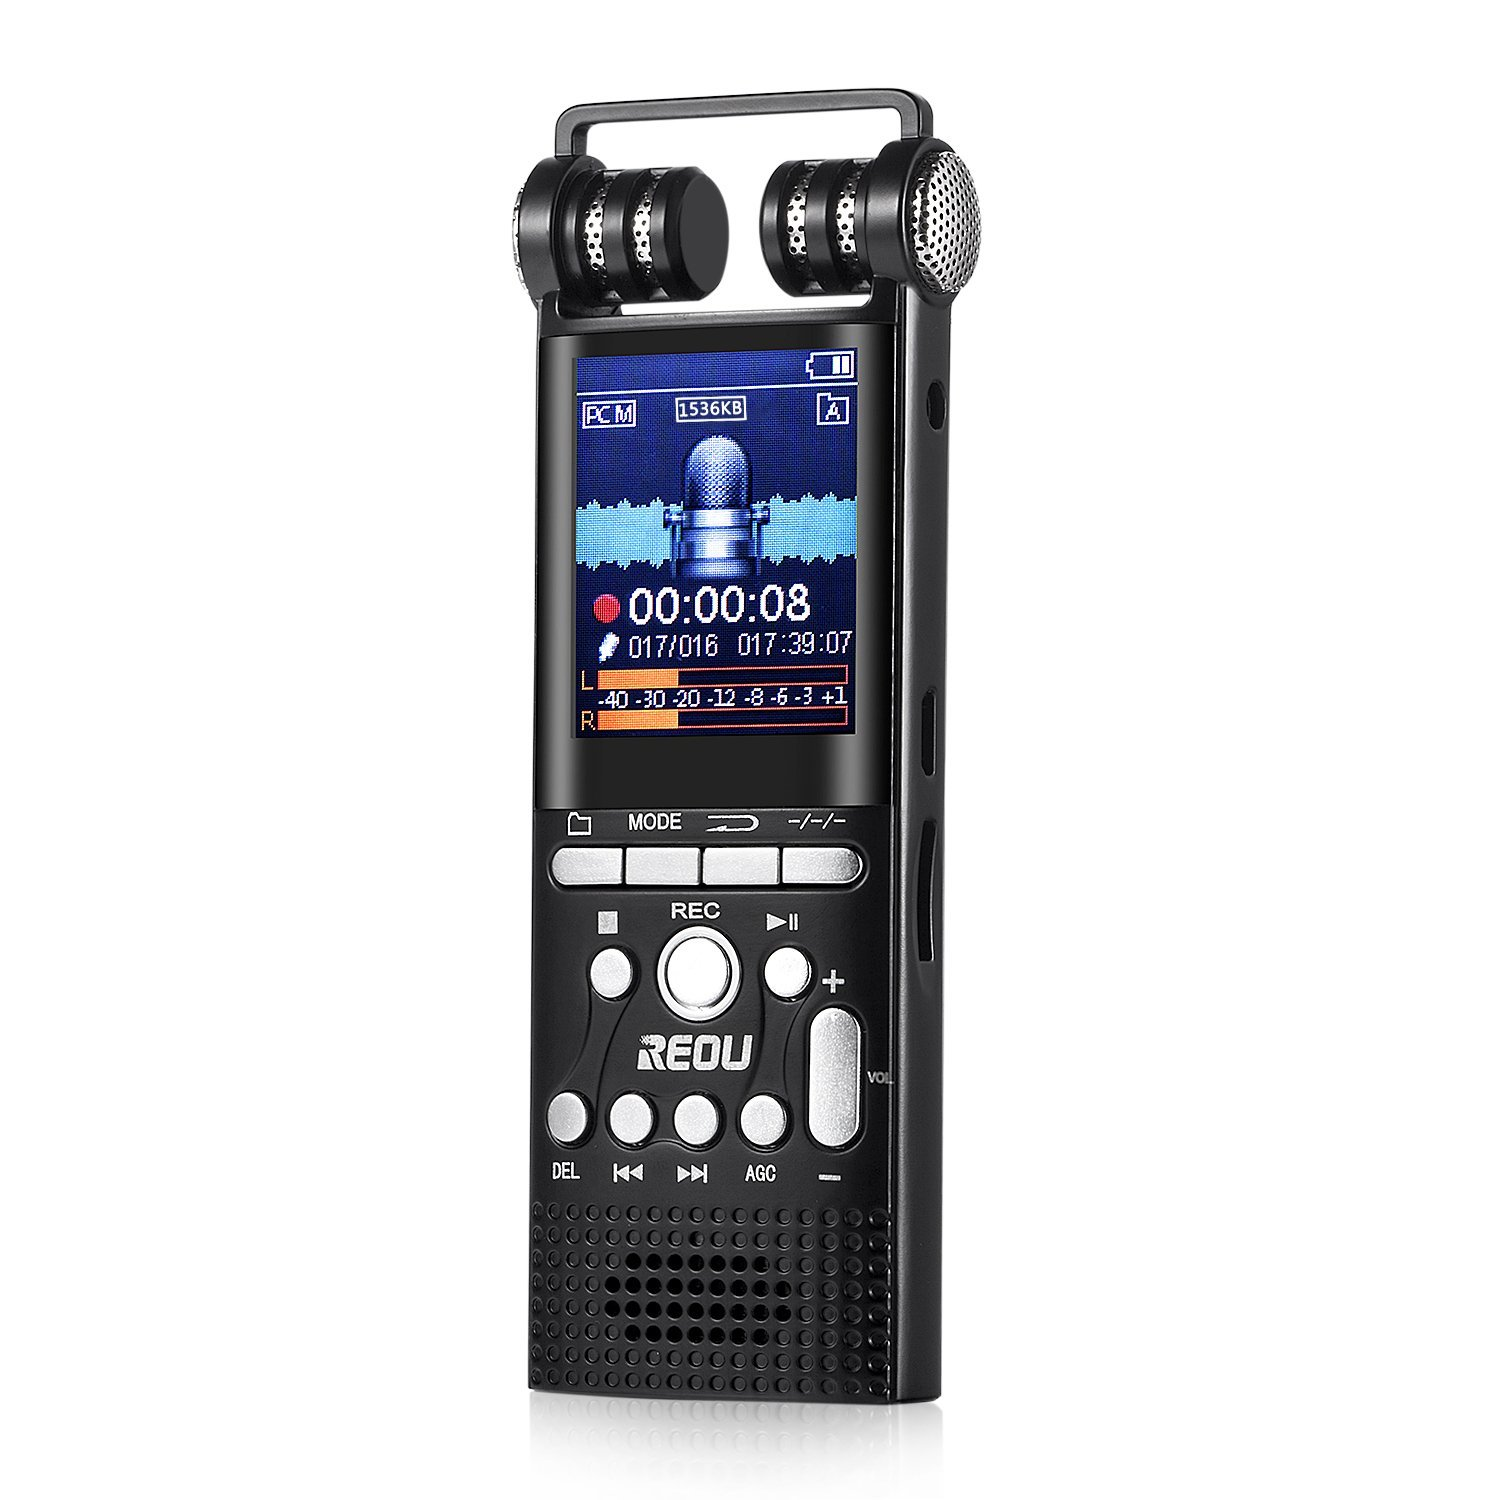 REOU Digital Voice Recorder Smartphone Landline Call Sound Recorder, 4GB Voice Activated Recorder with MP3 Player, DSP Noise Reduction, Up to 128GB, for Interview, Learning, etc. by REOU